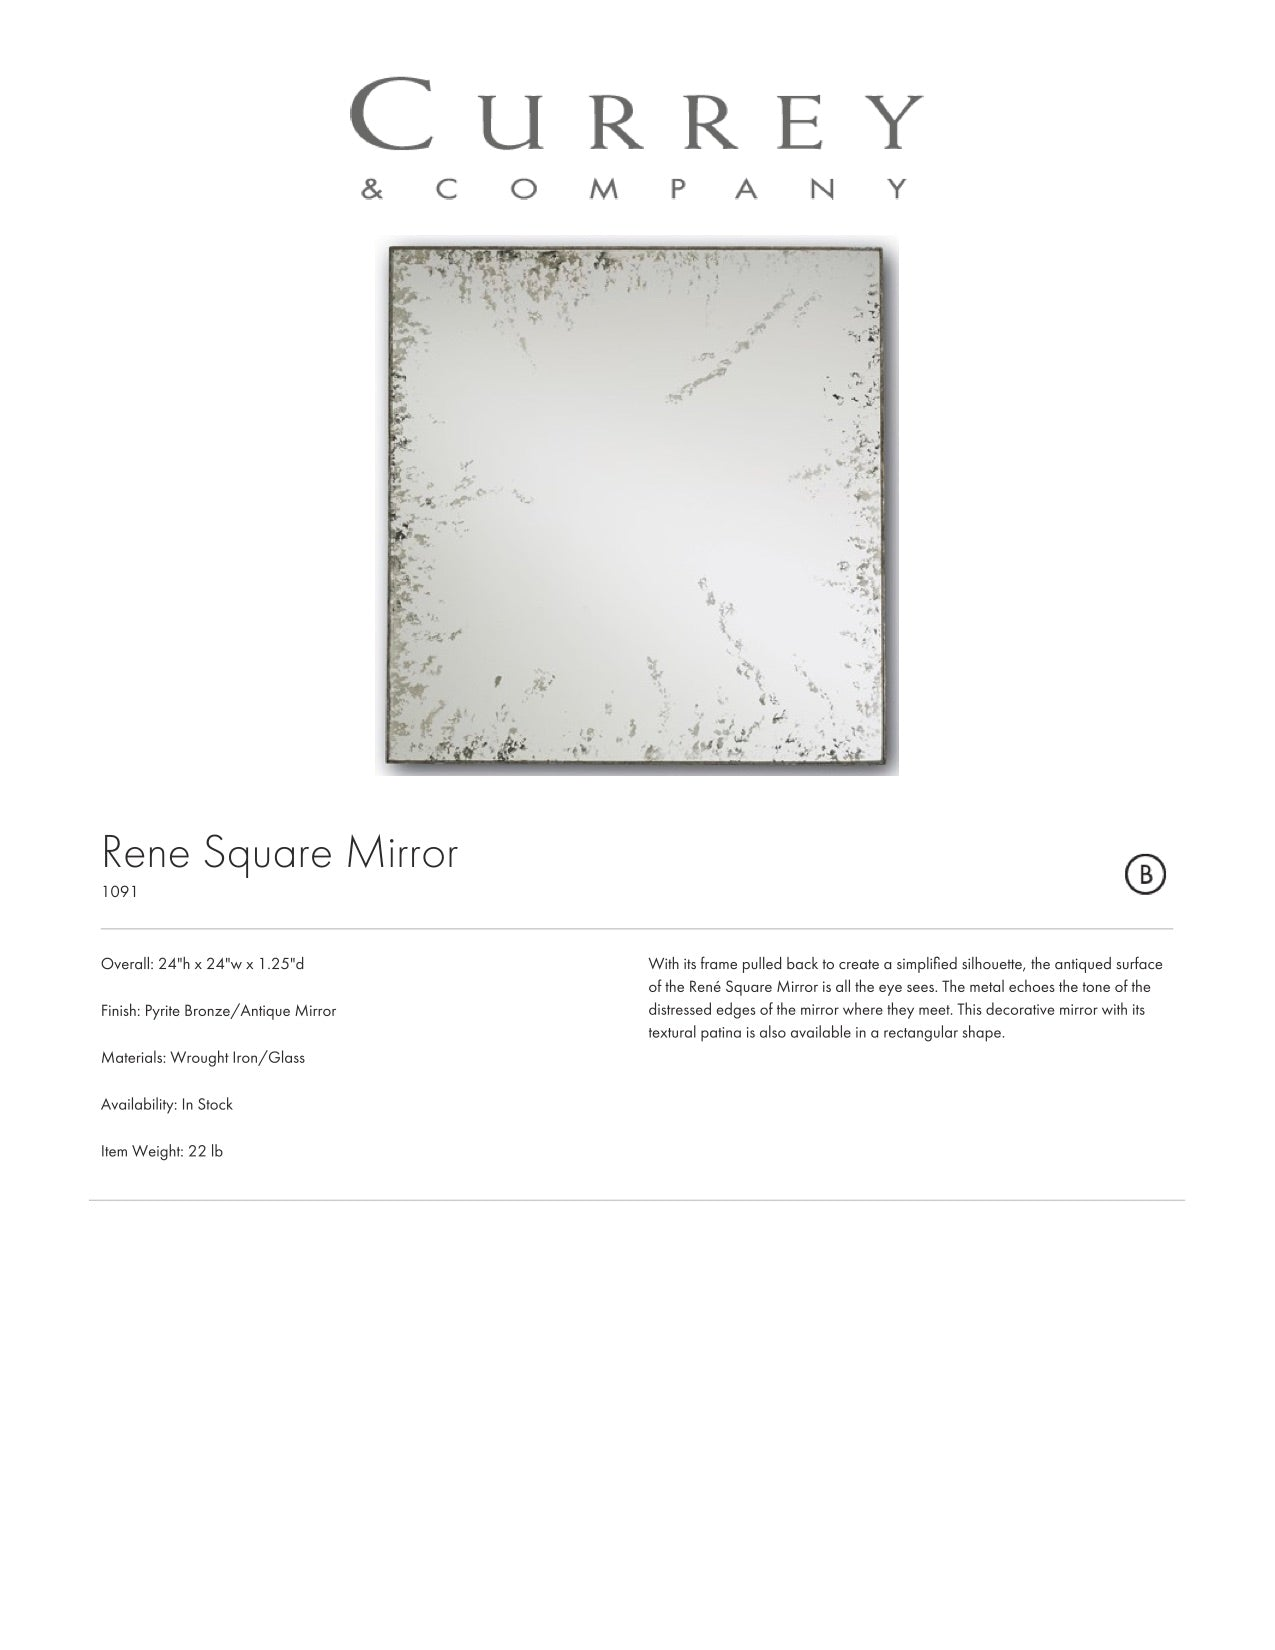 Currey & Company René Square Mirror Tearsheet